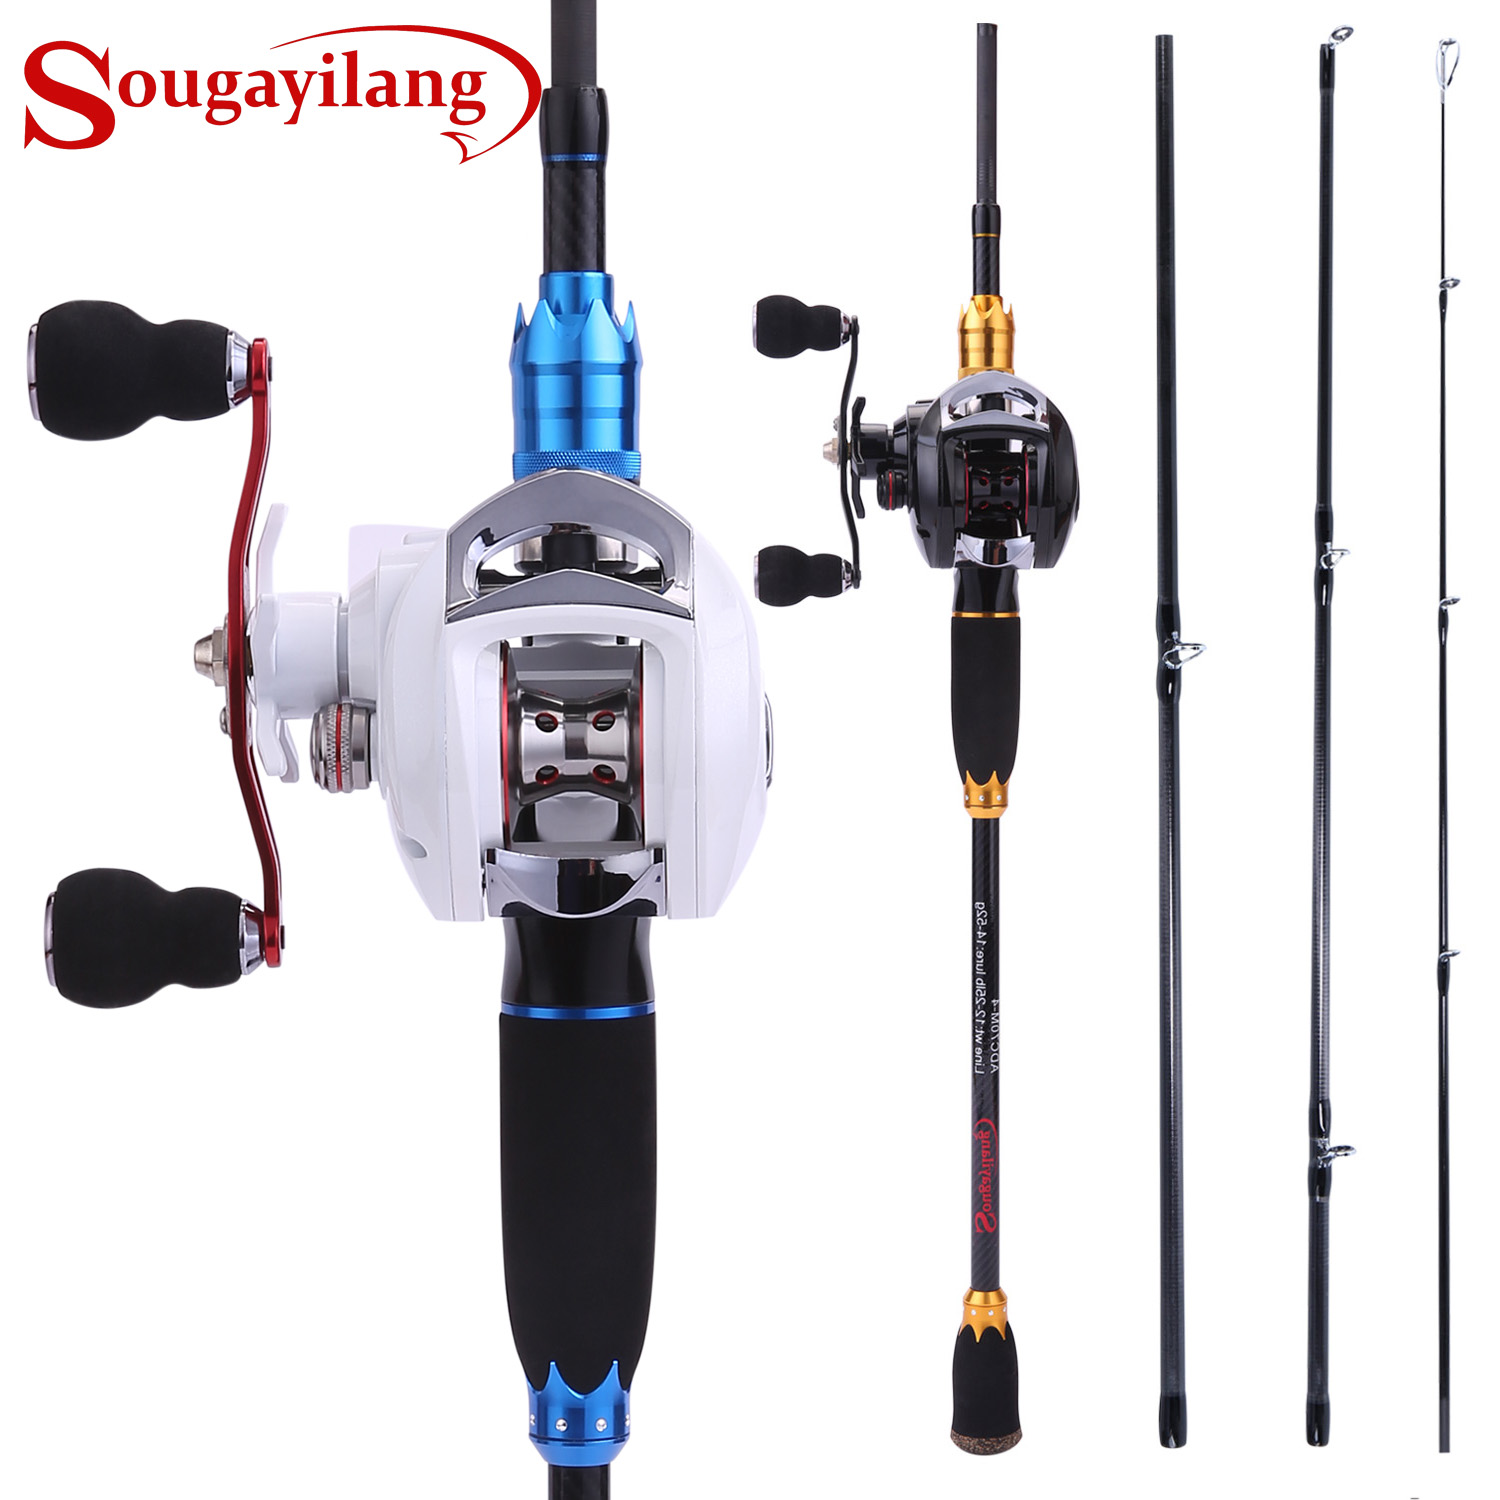 Sougayilang 4 Section Carbon Portable Fishing Rod with Baitcasting Reel Combo for Boat Sea Freshwater Travel Bass Carp FishingSougayilang 4 Section Carbon Portable Fishing Rod with Baitcasting Reel Combo for Boat Sea Freshwater Travel Bass Carp Fishing